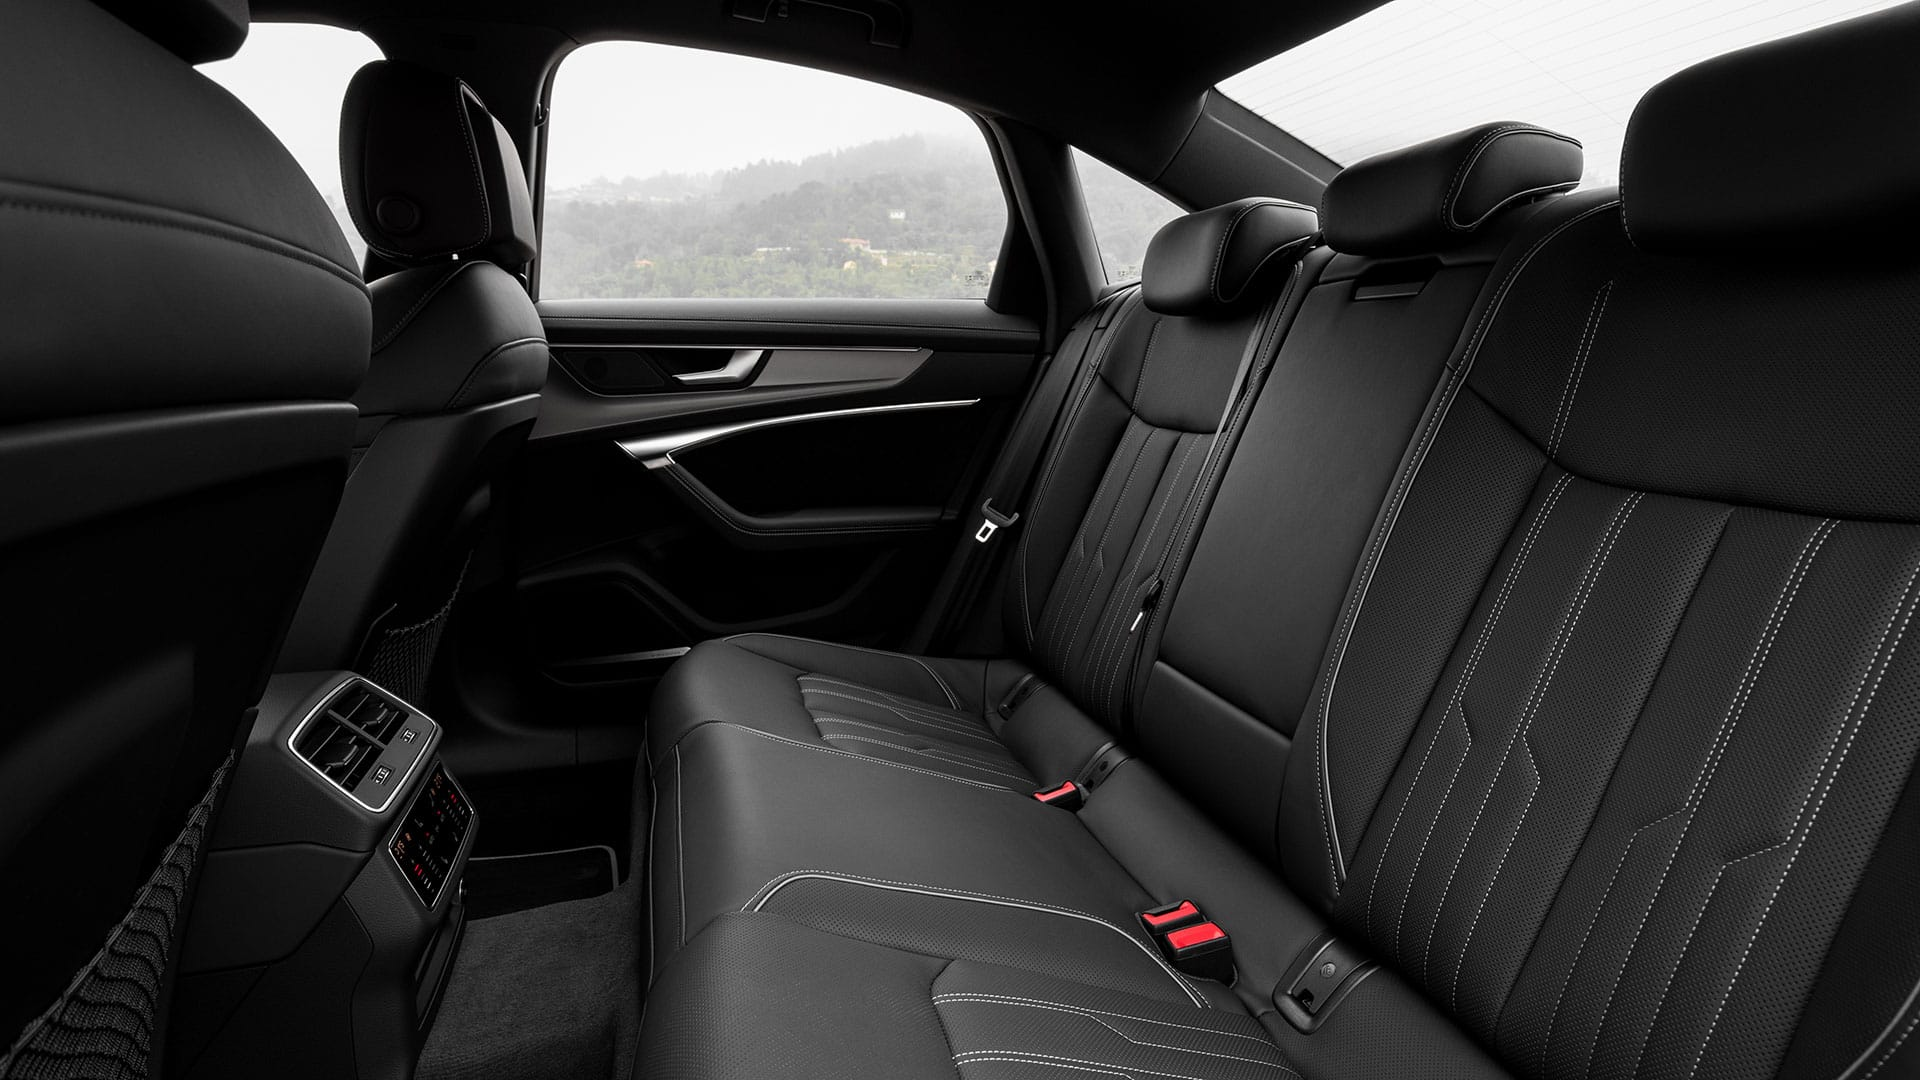 Rear seats in the Audi A6 Limousine 55 TFSI e quattro